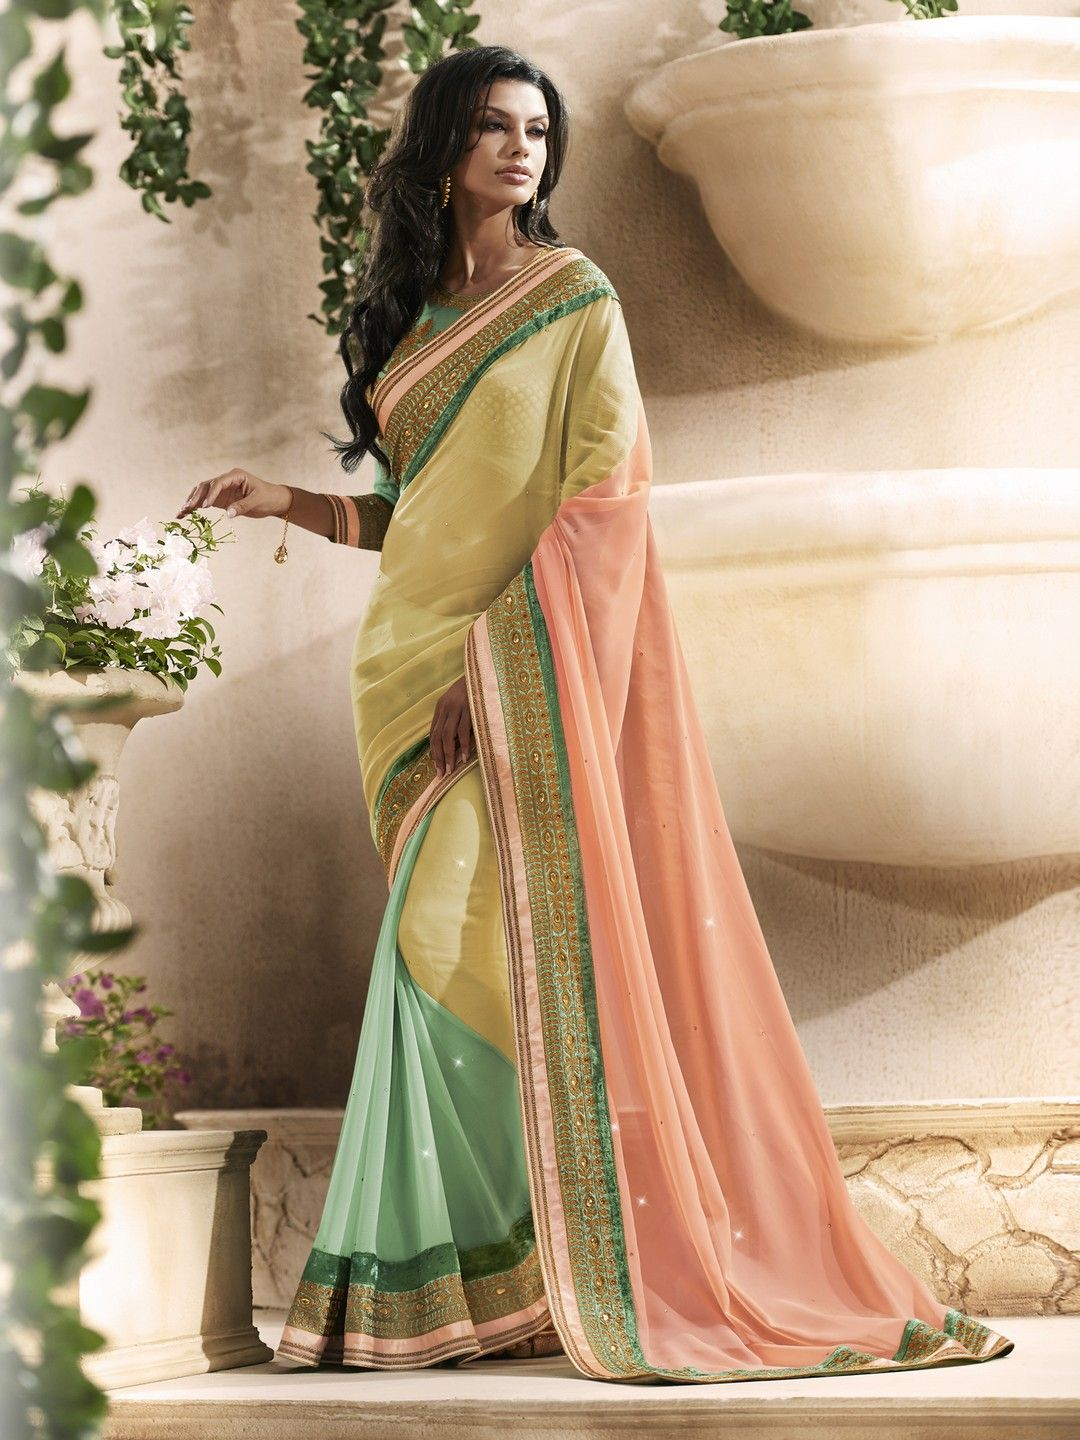 Silk saree lehenga designer lehenga sarees for party and wedding lehengasaree